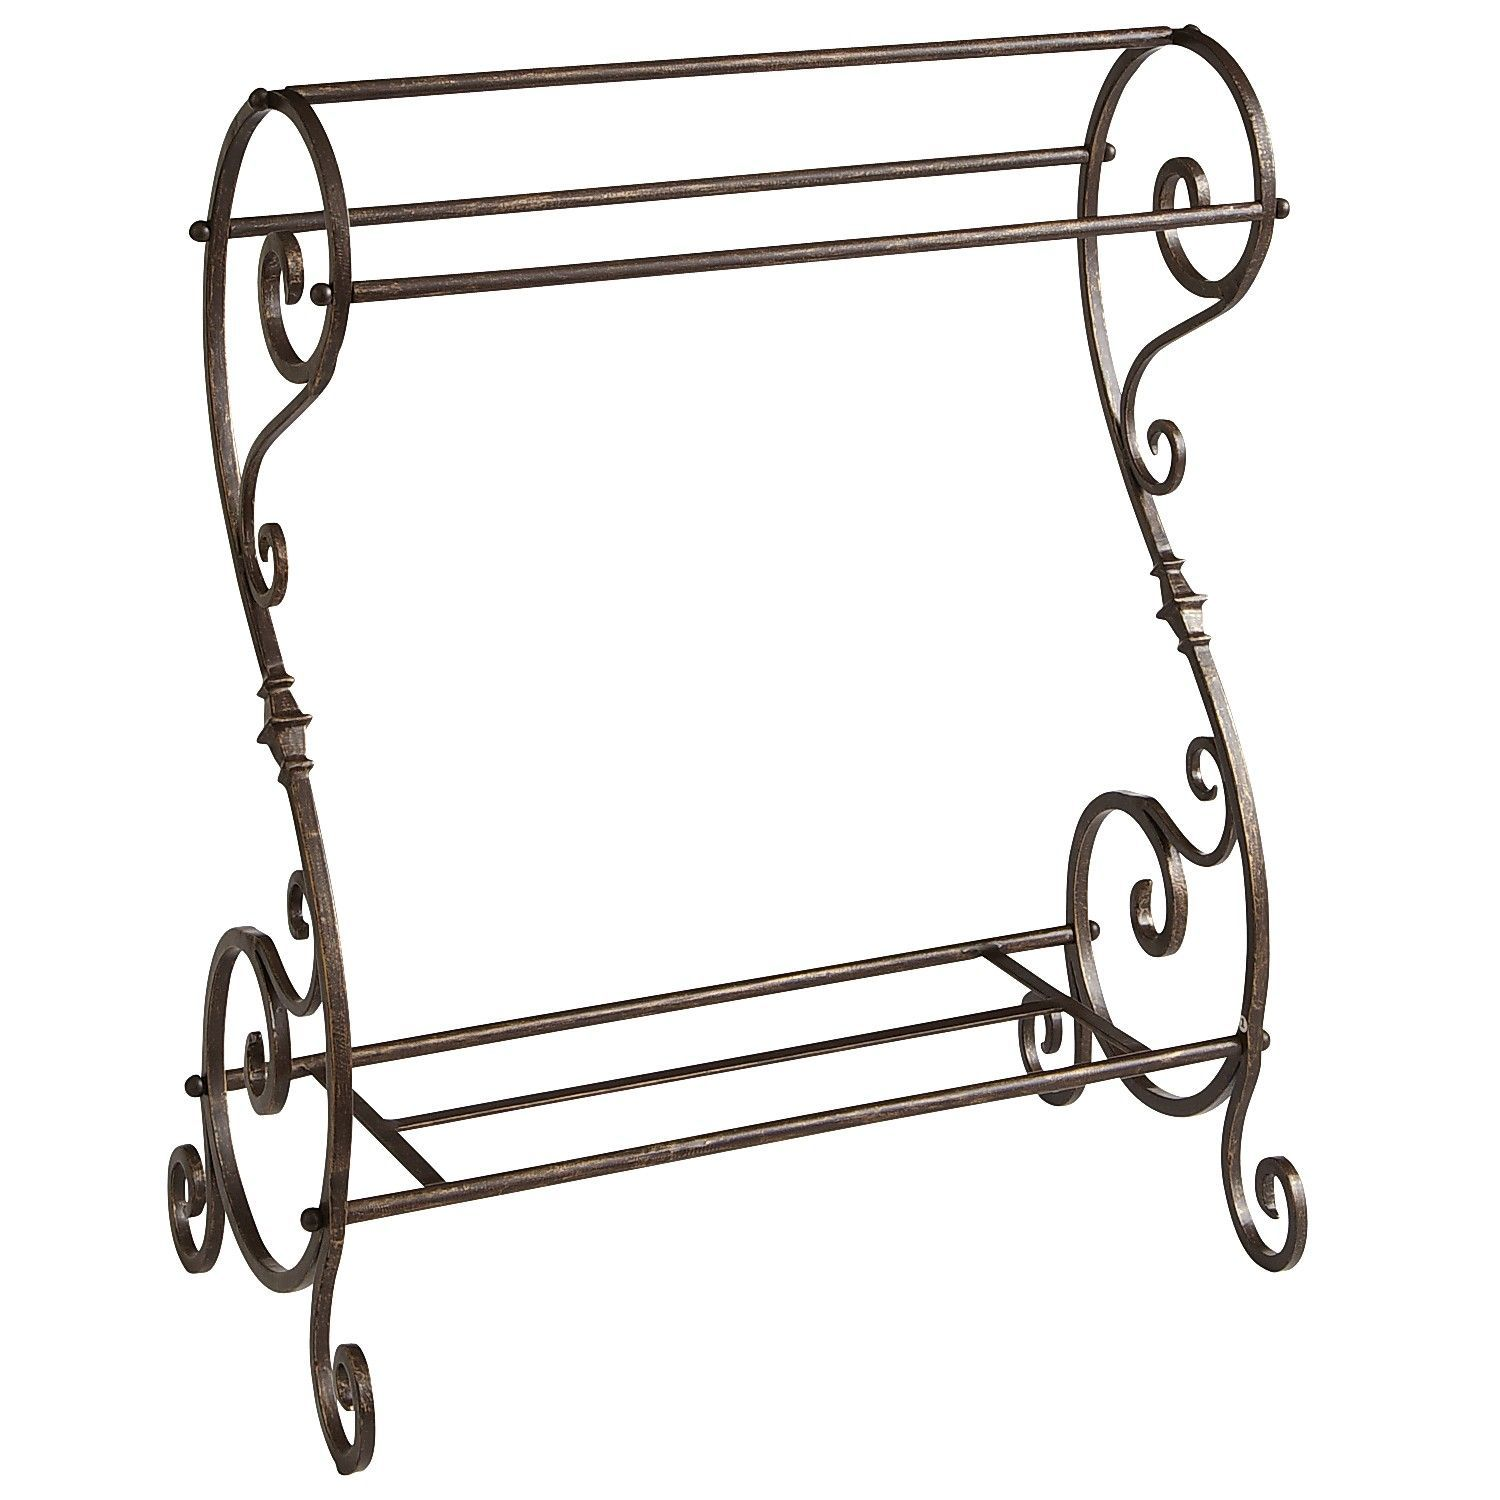 Pier 1 Imports Scroll Quilt Rack - First day at Pier 1 I wanted ... : pier one quilts - Adamdwight.com